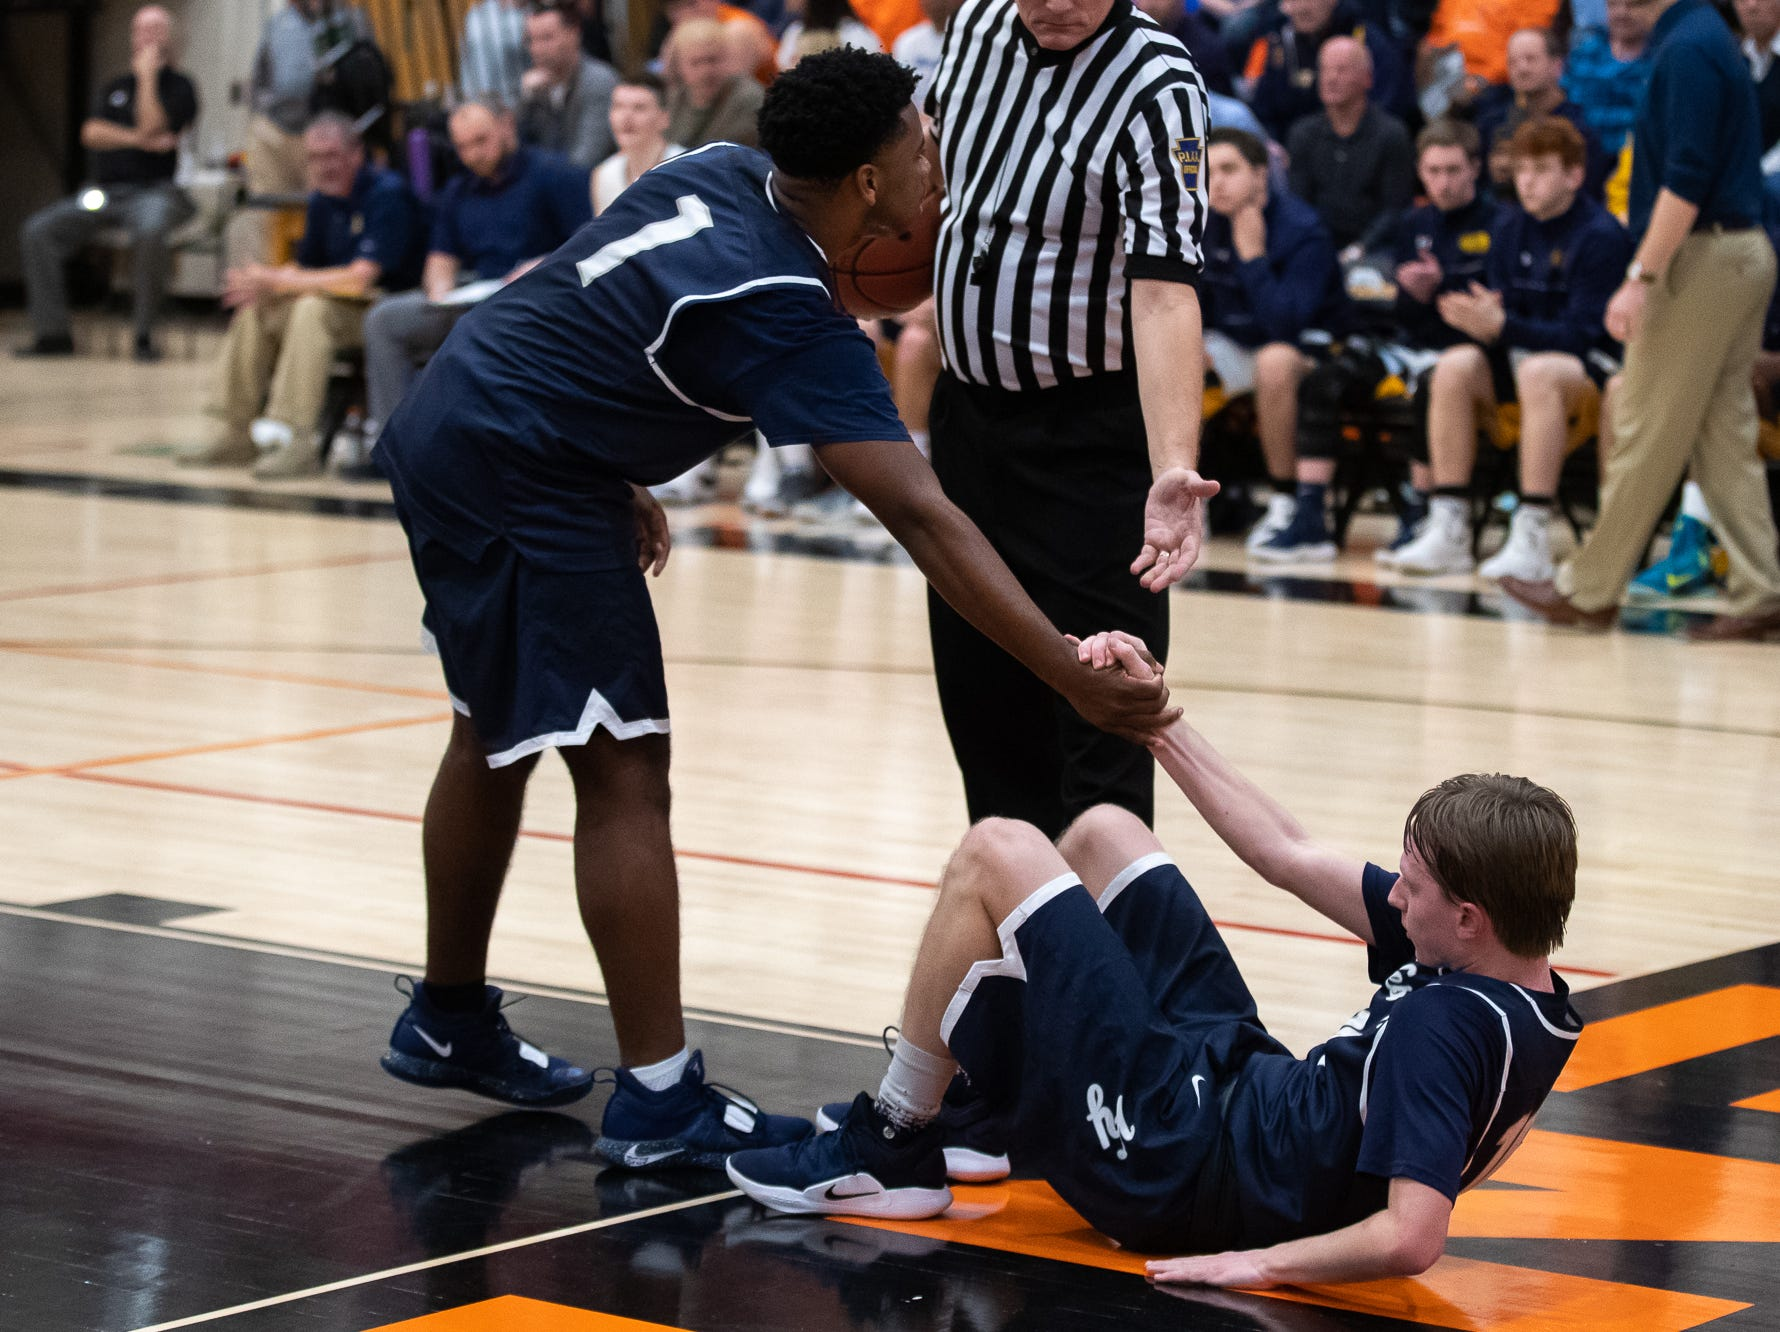 West York's Kelvin Matthews (1) helps up West York's Corey Wise (10) after he fell during the second half of the YAIAA boys' basketball quarterfinals between Littlestown and West York, Saturday, Feb. 9, 2019, at Central York High School. The Littlestown Bolts defeated the West York Bulldogs 73-63.